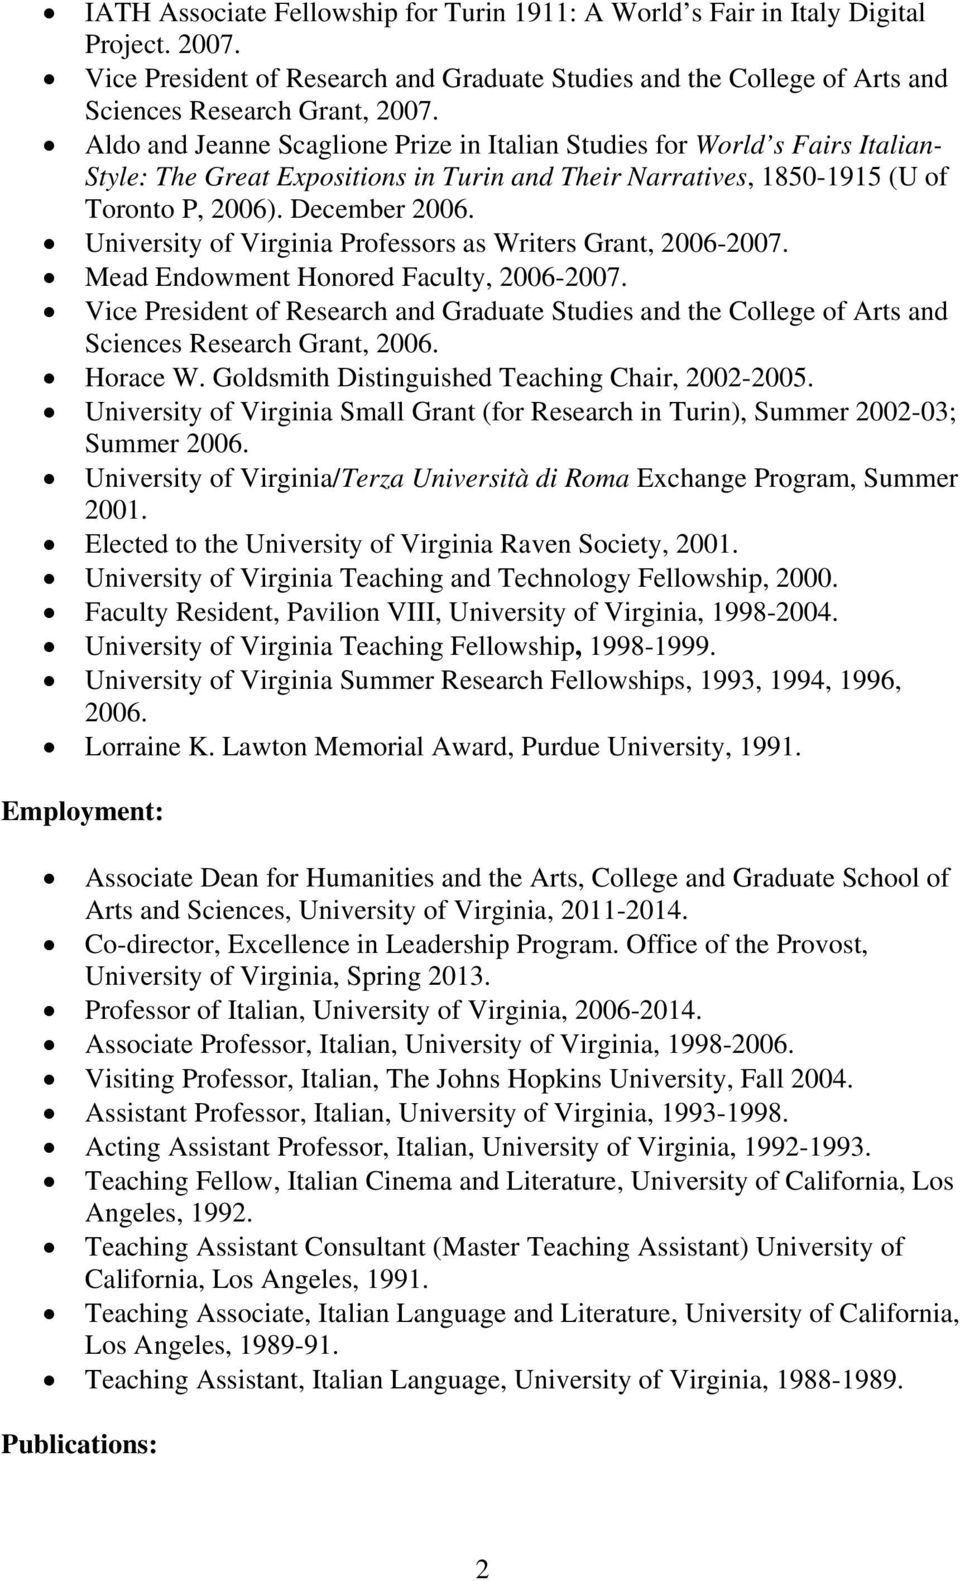 University of Virginia Professors as Writers Grant, 2006-2007. Mead Endowment Honored Faculty, 2006-2007.